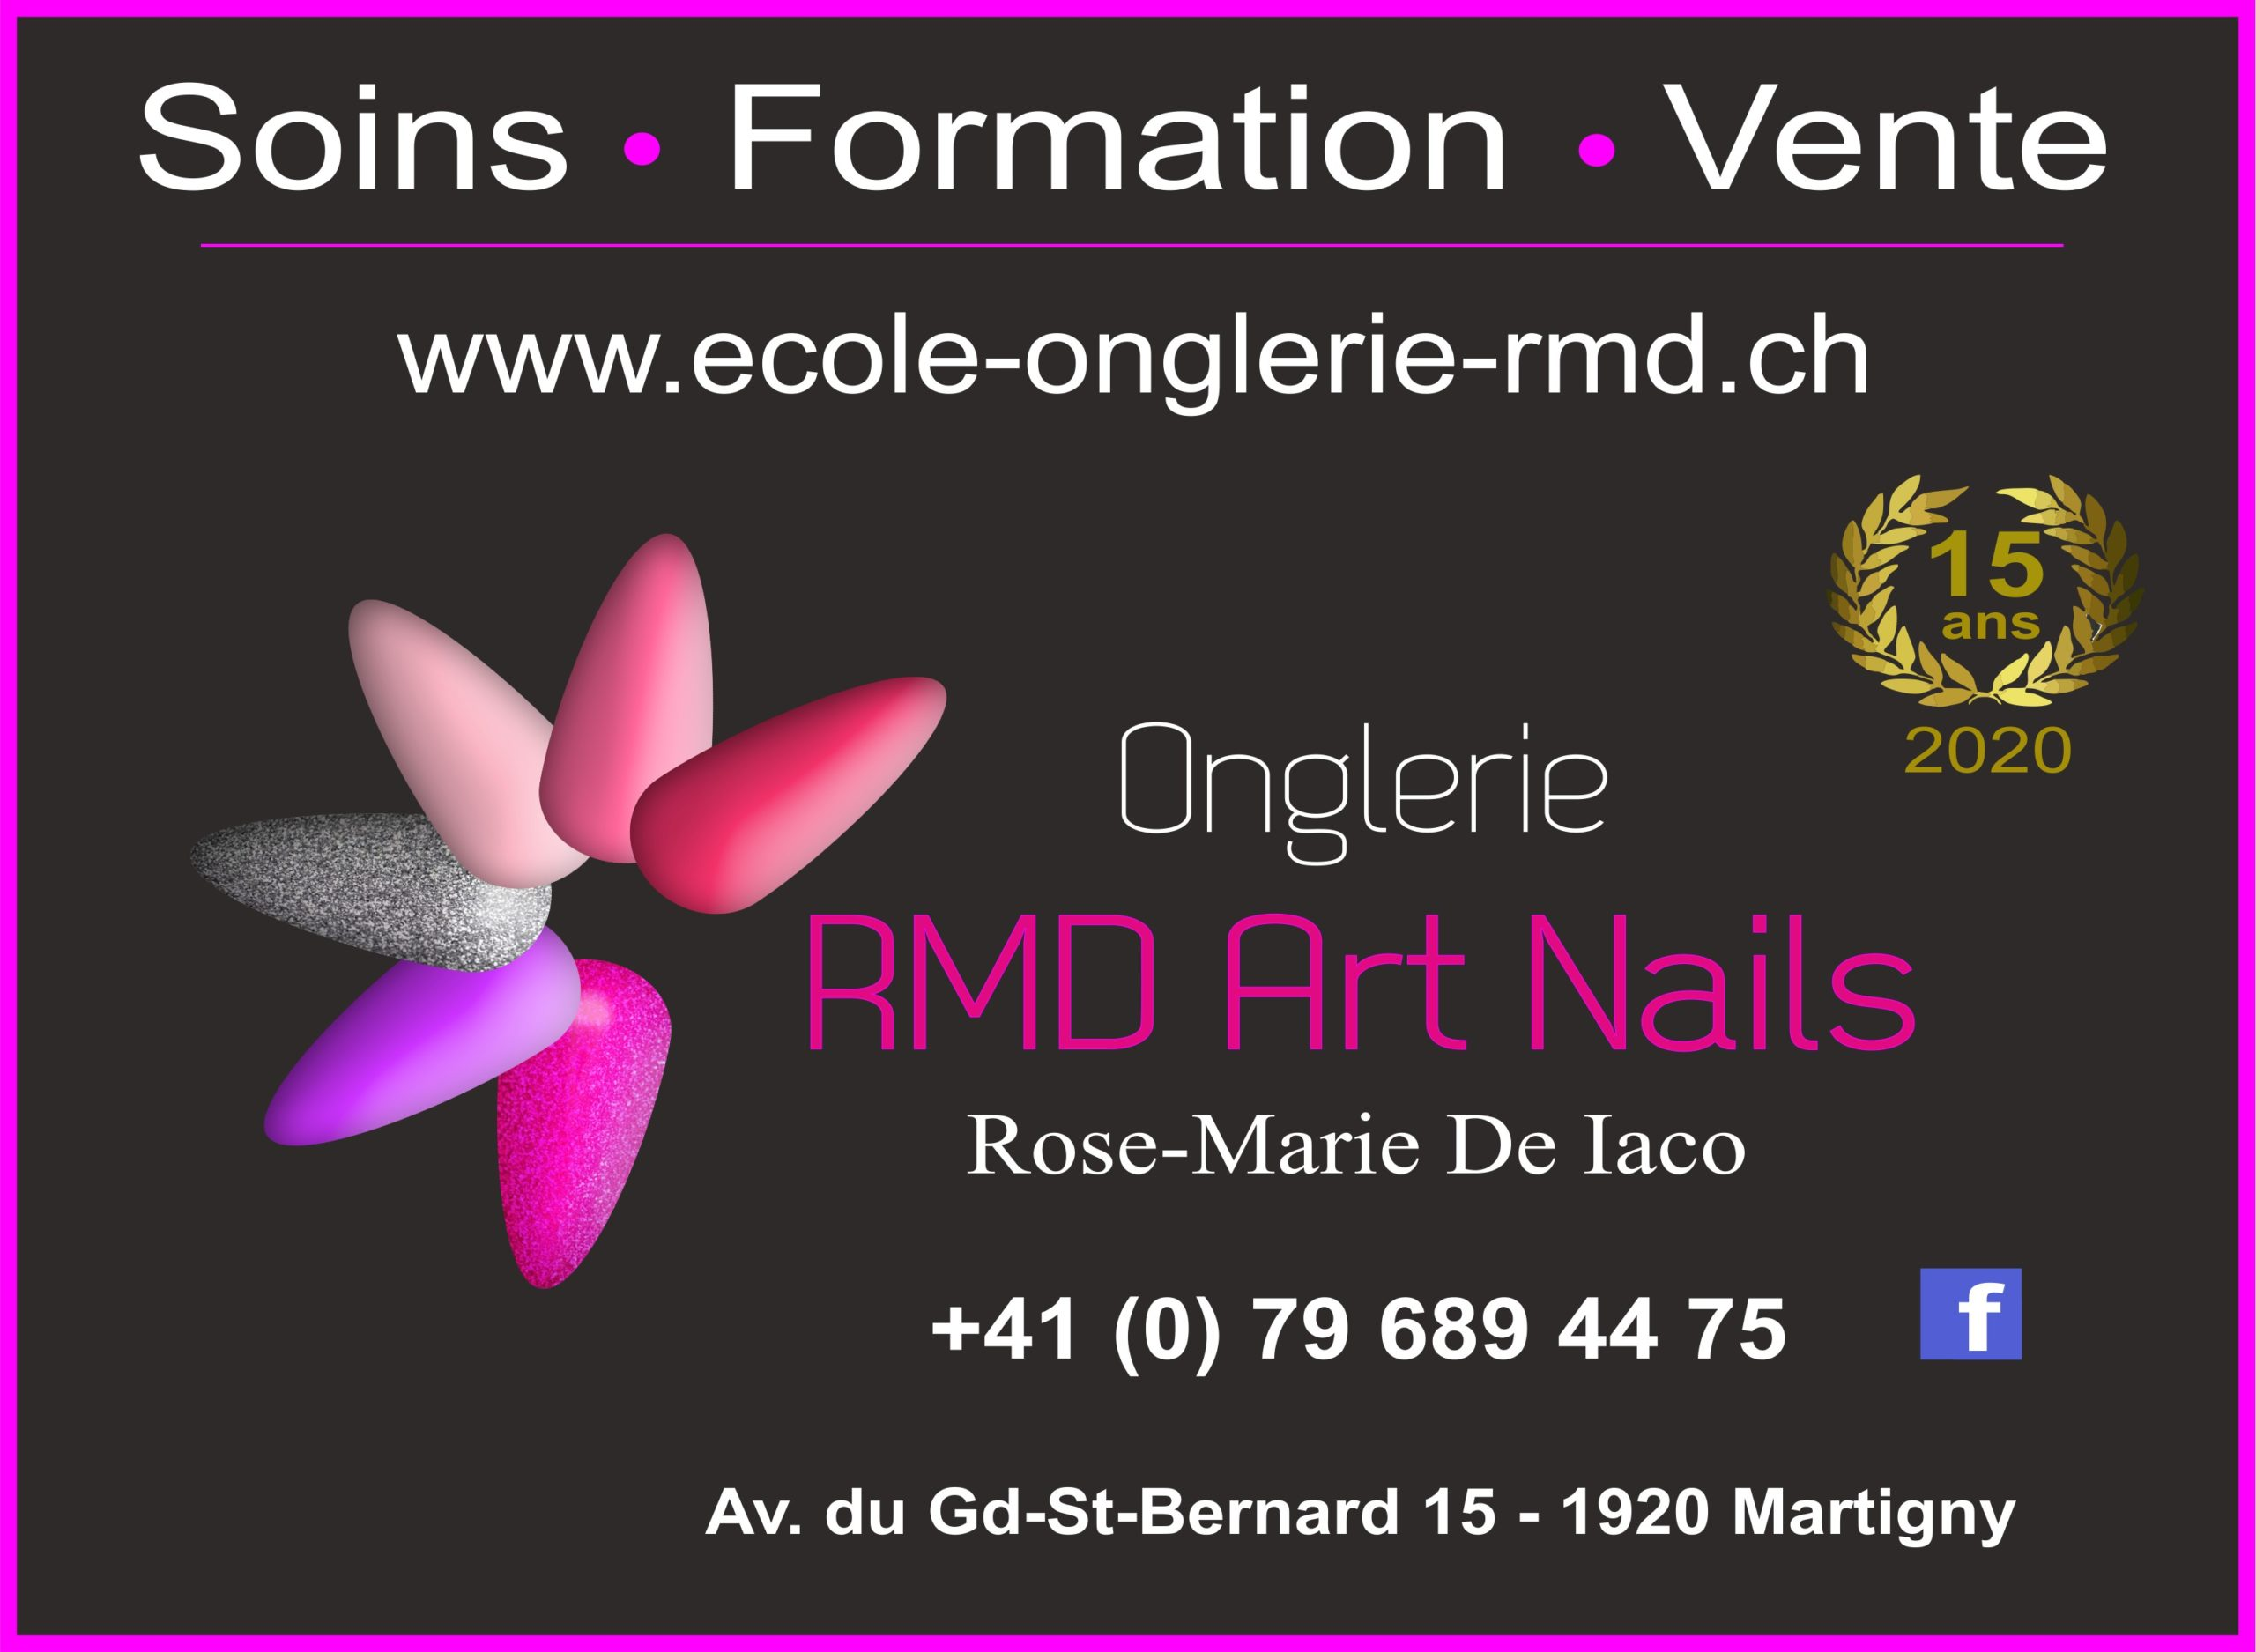 Onglerie RMD Art Nails